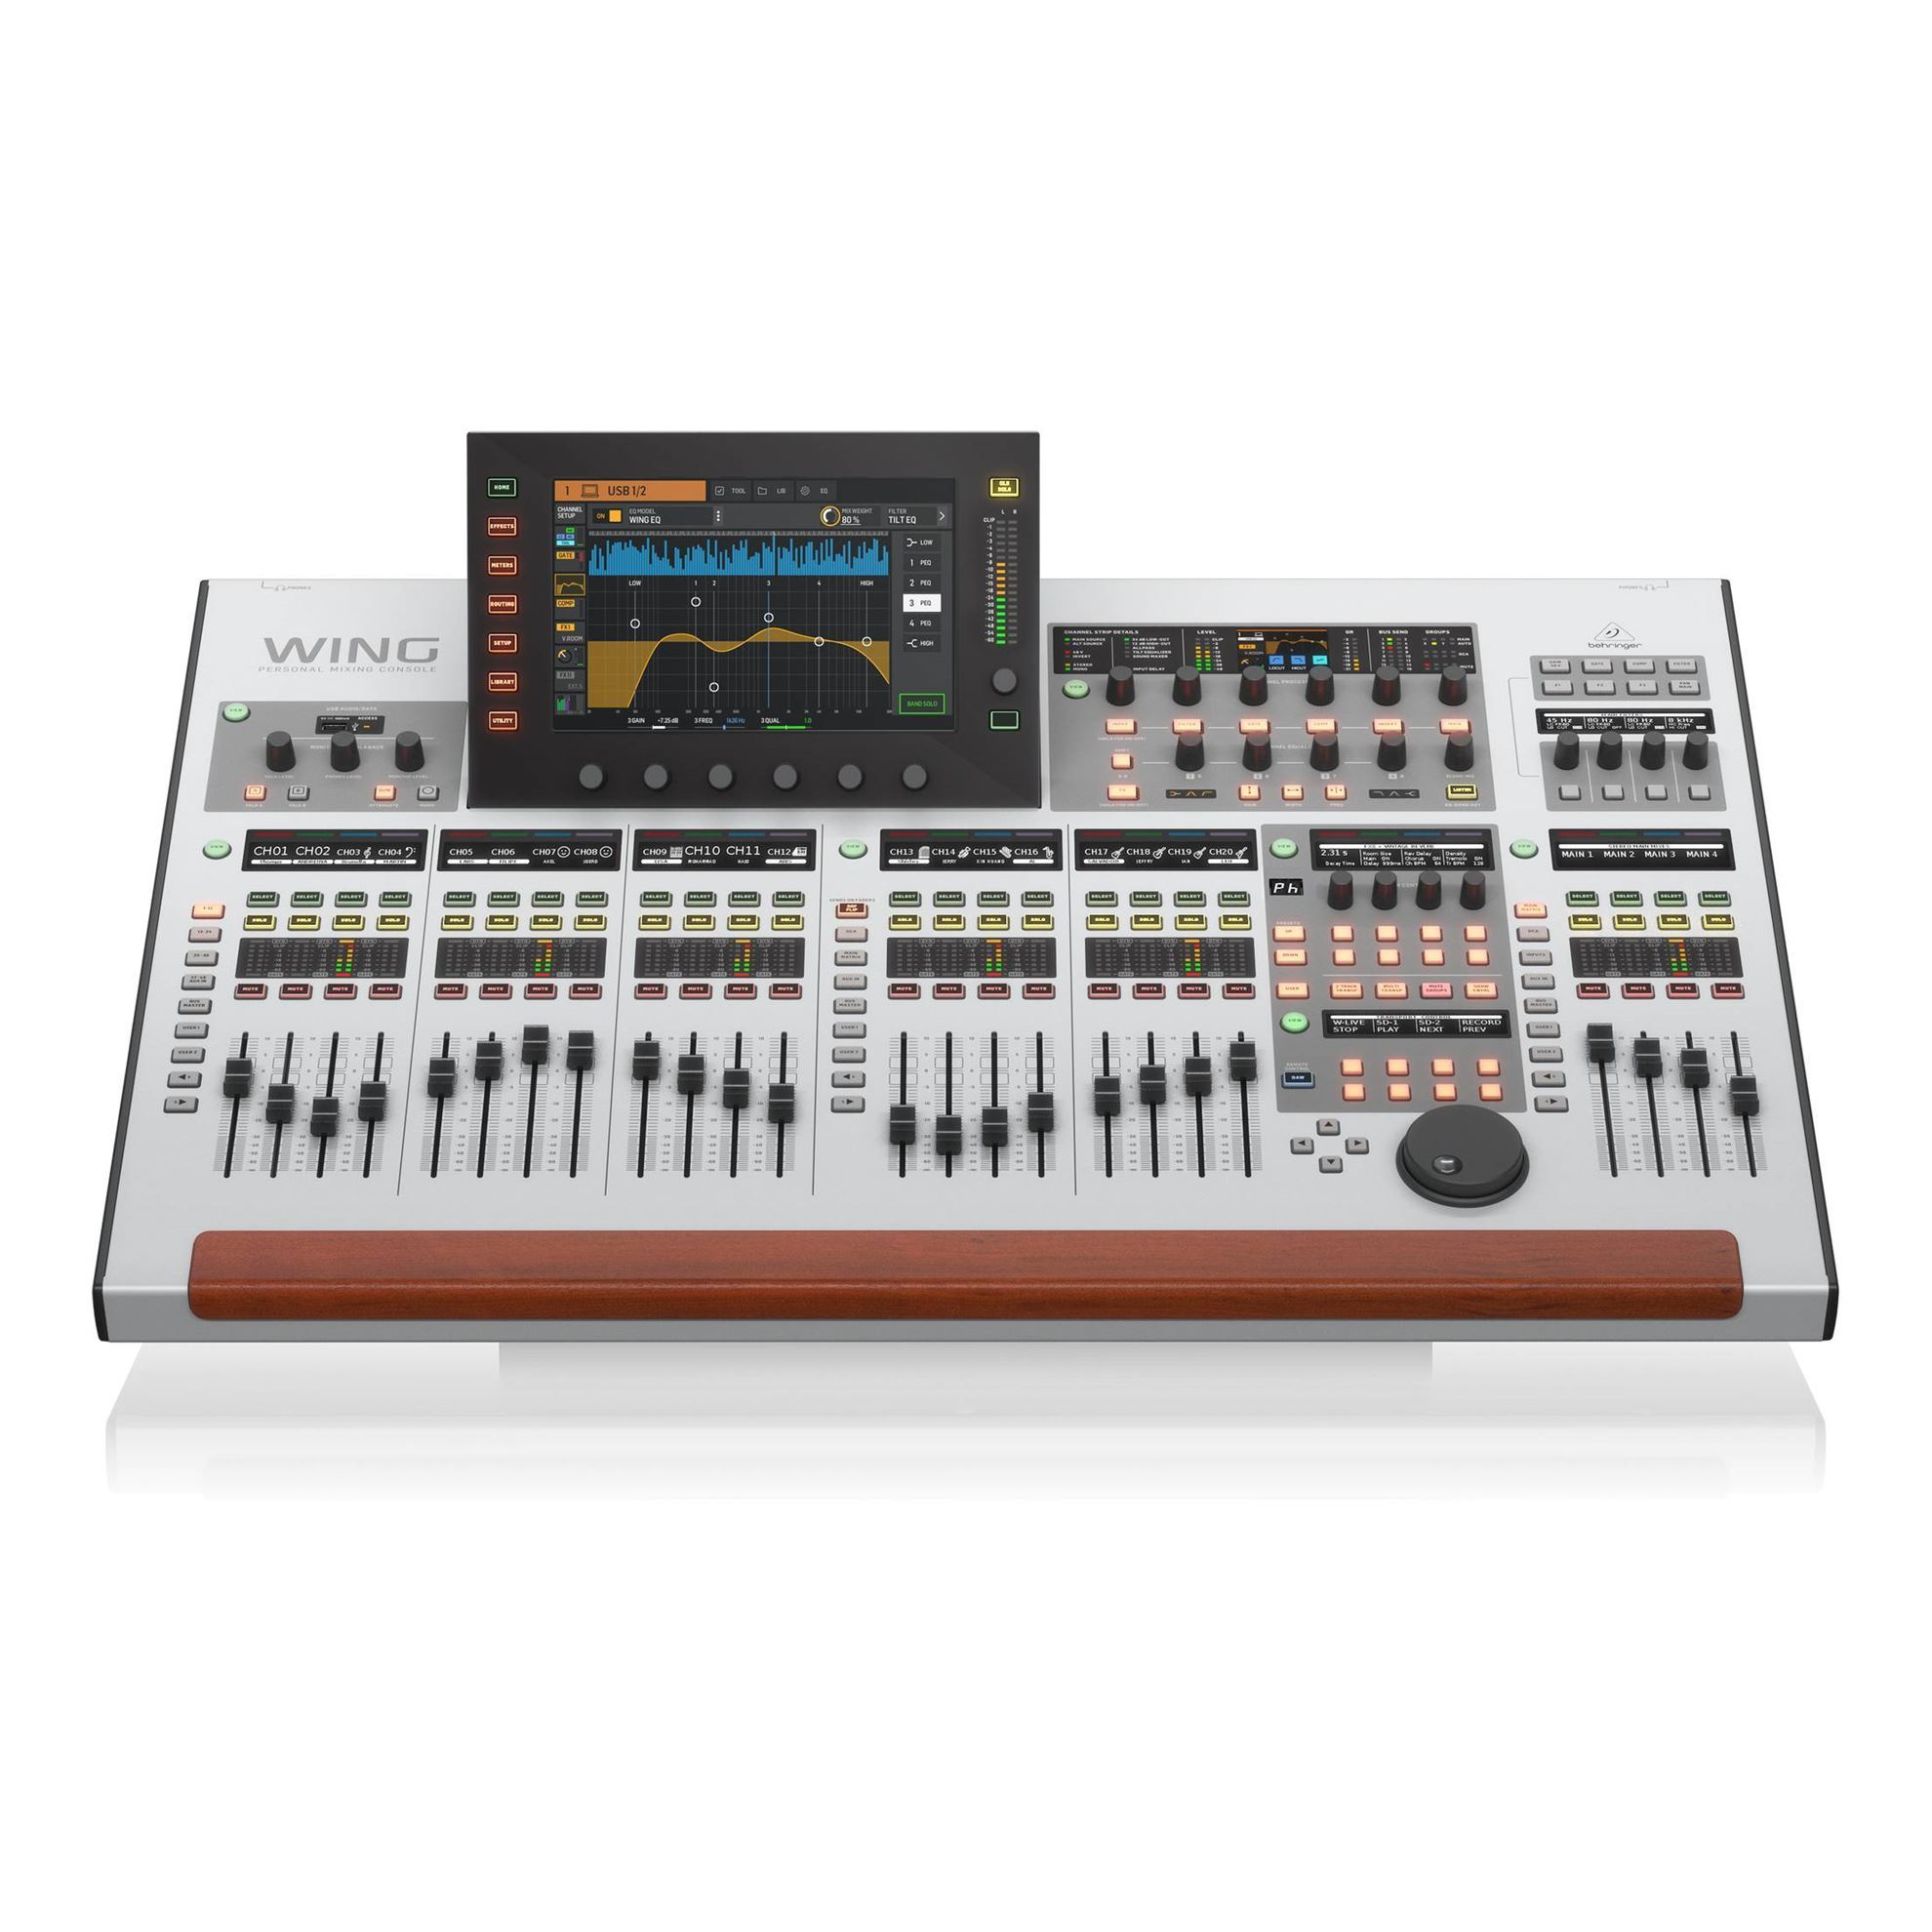 Behringer Wing Digital Mixing Console - Front